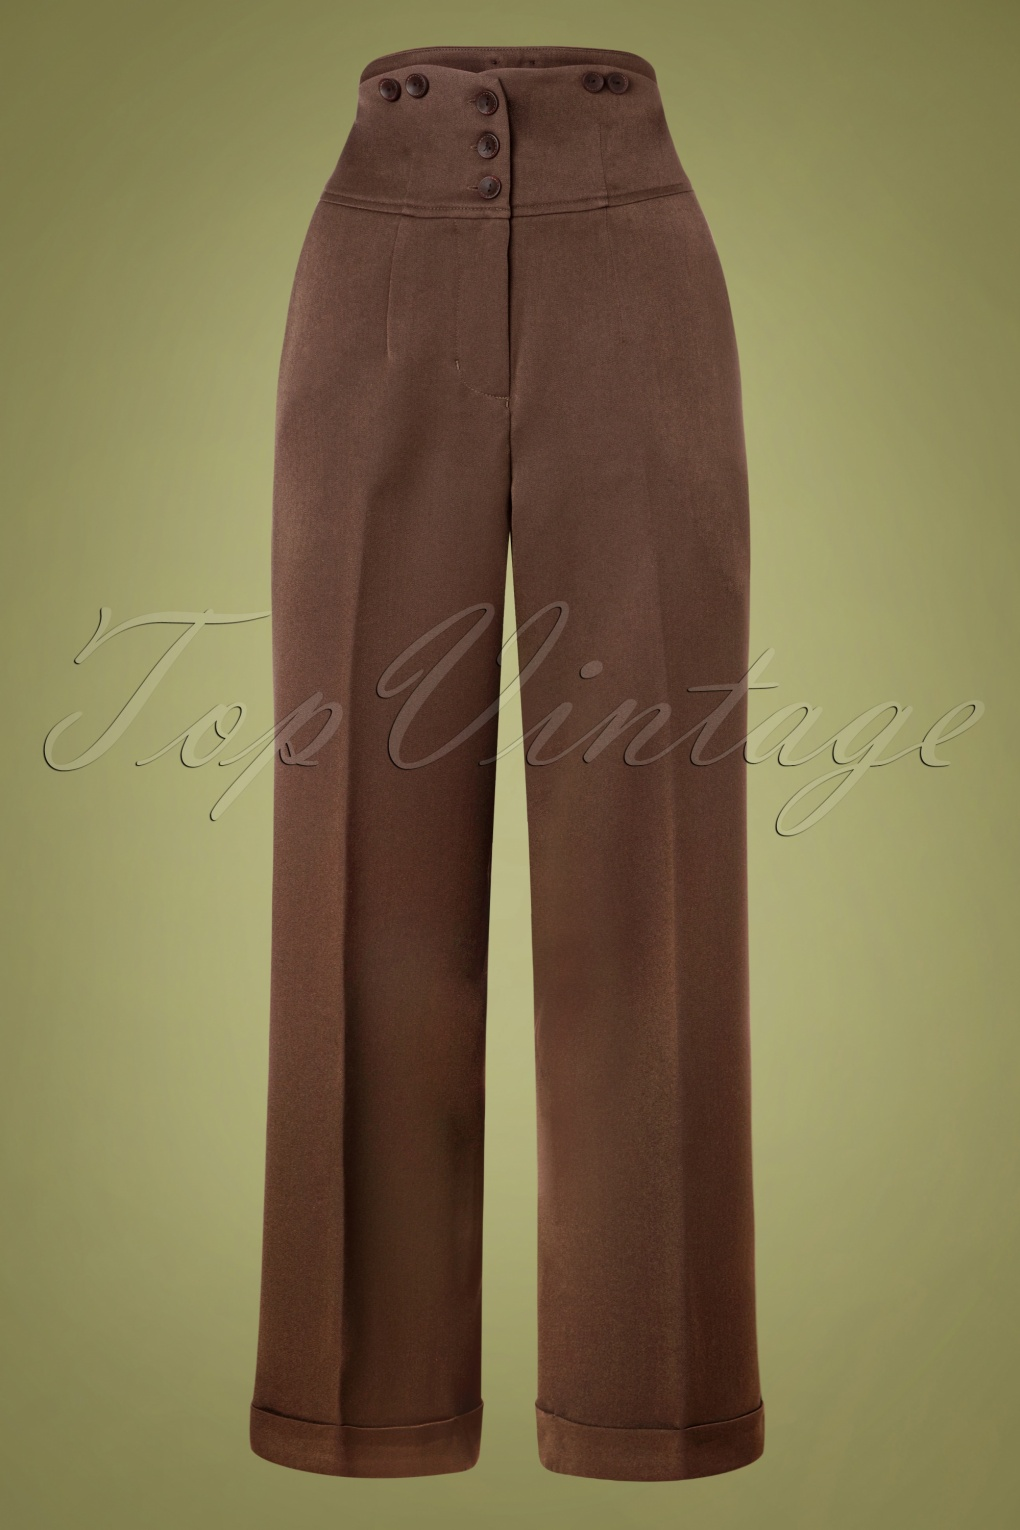 Vintage High Waisted Trousers, Sailor Pants, Jeans 50s Girl Boss Trousers in Brown £45.72 AT vintagedancer.com